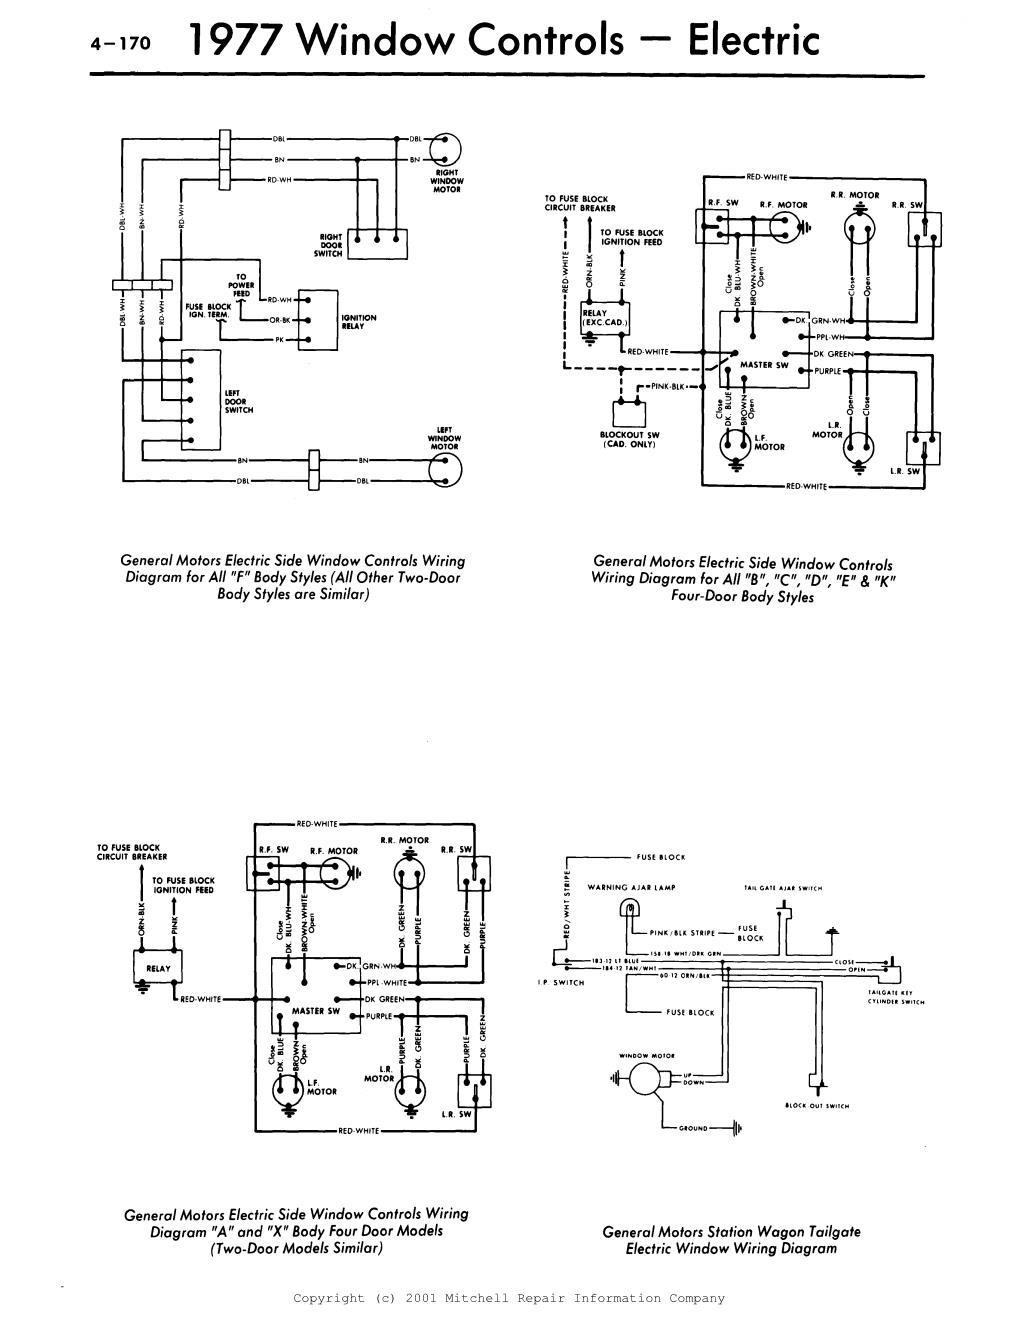 hight resolution of here are some wiring diagrams for you hopefully these help 1977 gm window controls